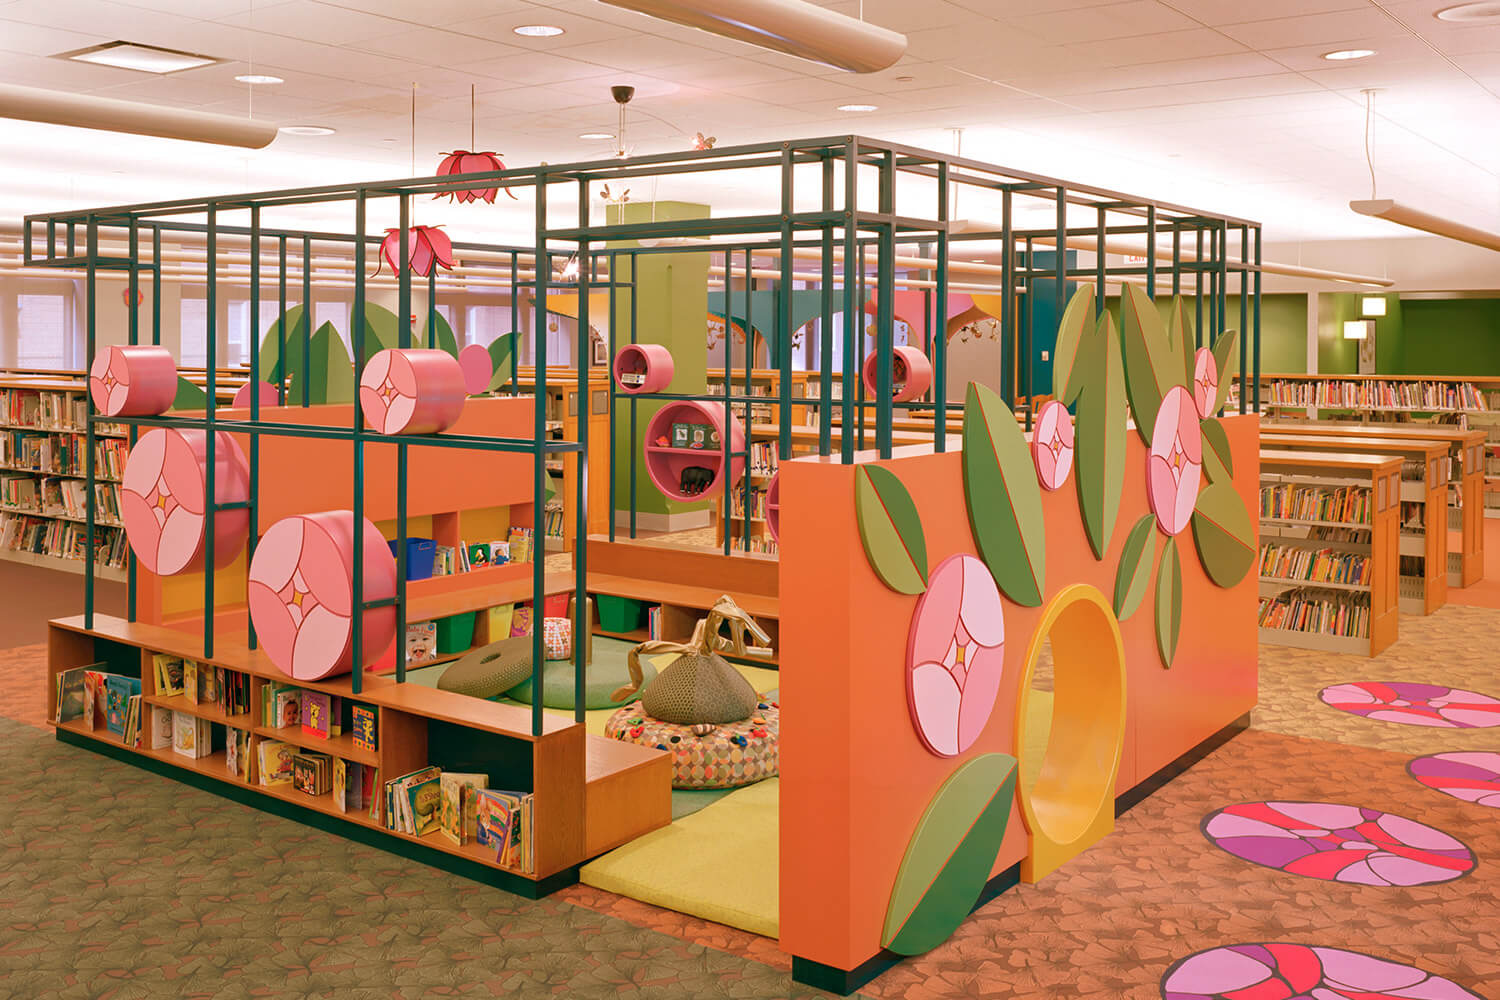 Evanston Public Library Renovation children's section 4